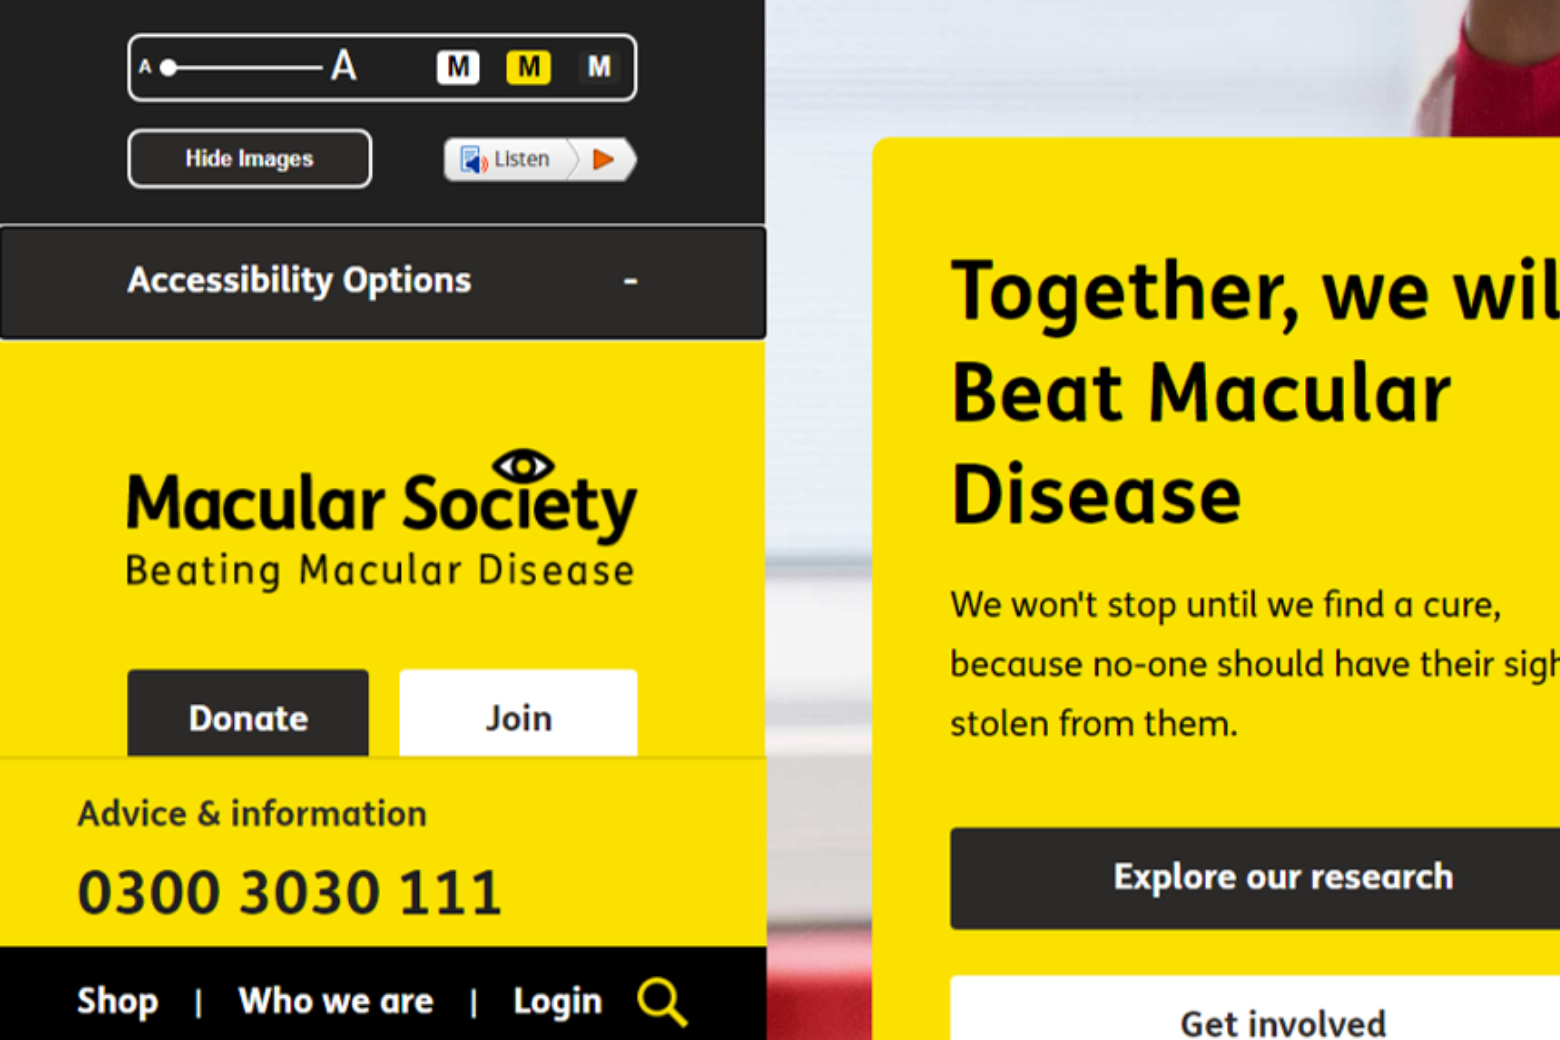 Accessibility options on charity web design